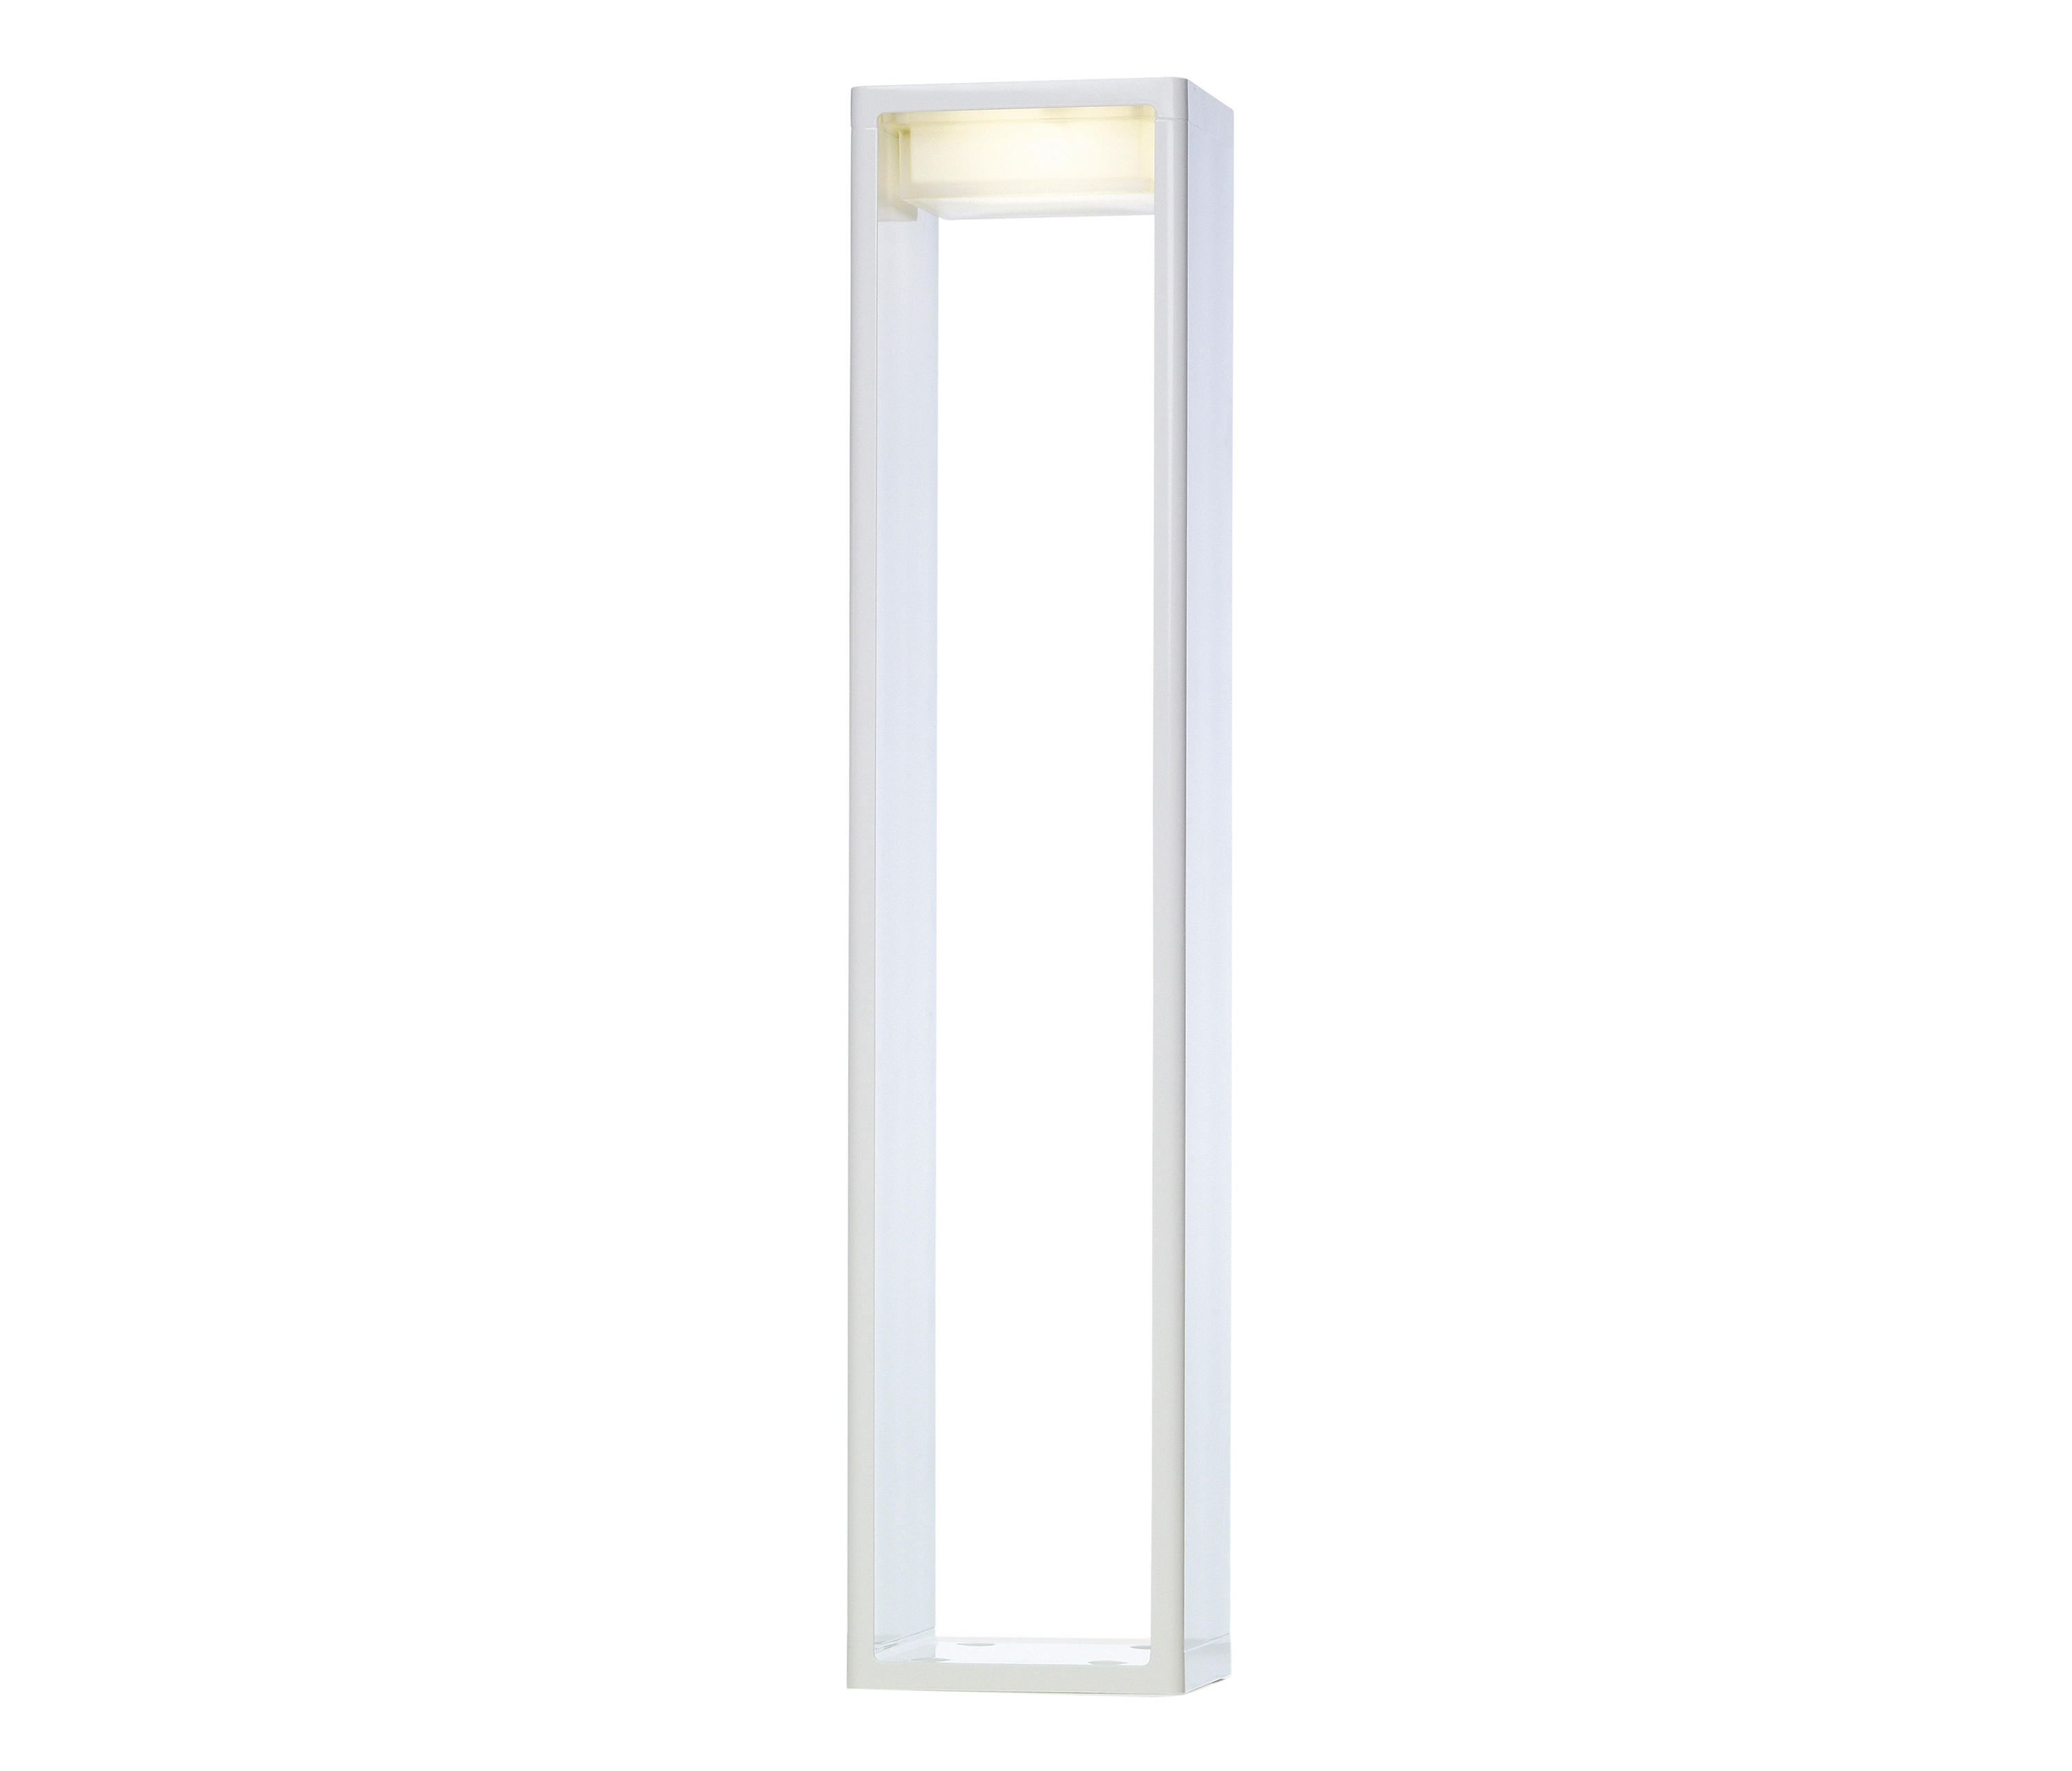 Frame L Baliza Exterior Fluo 2x7W G7 - Bronce